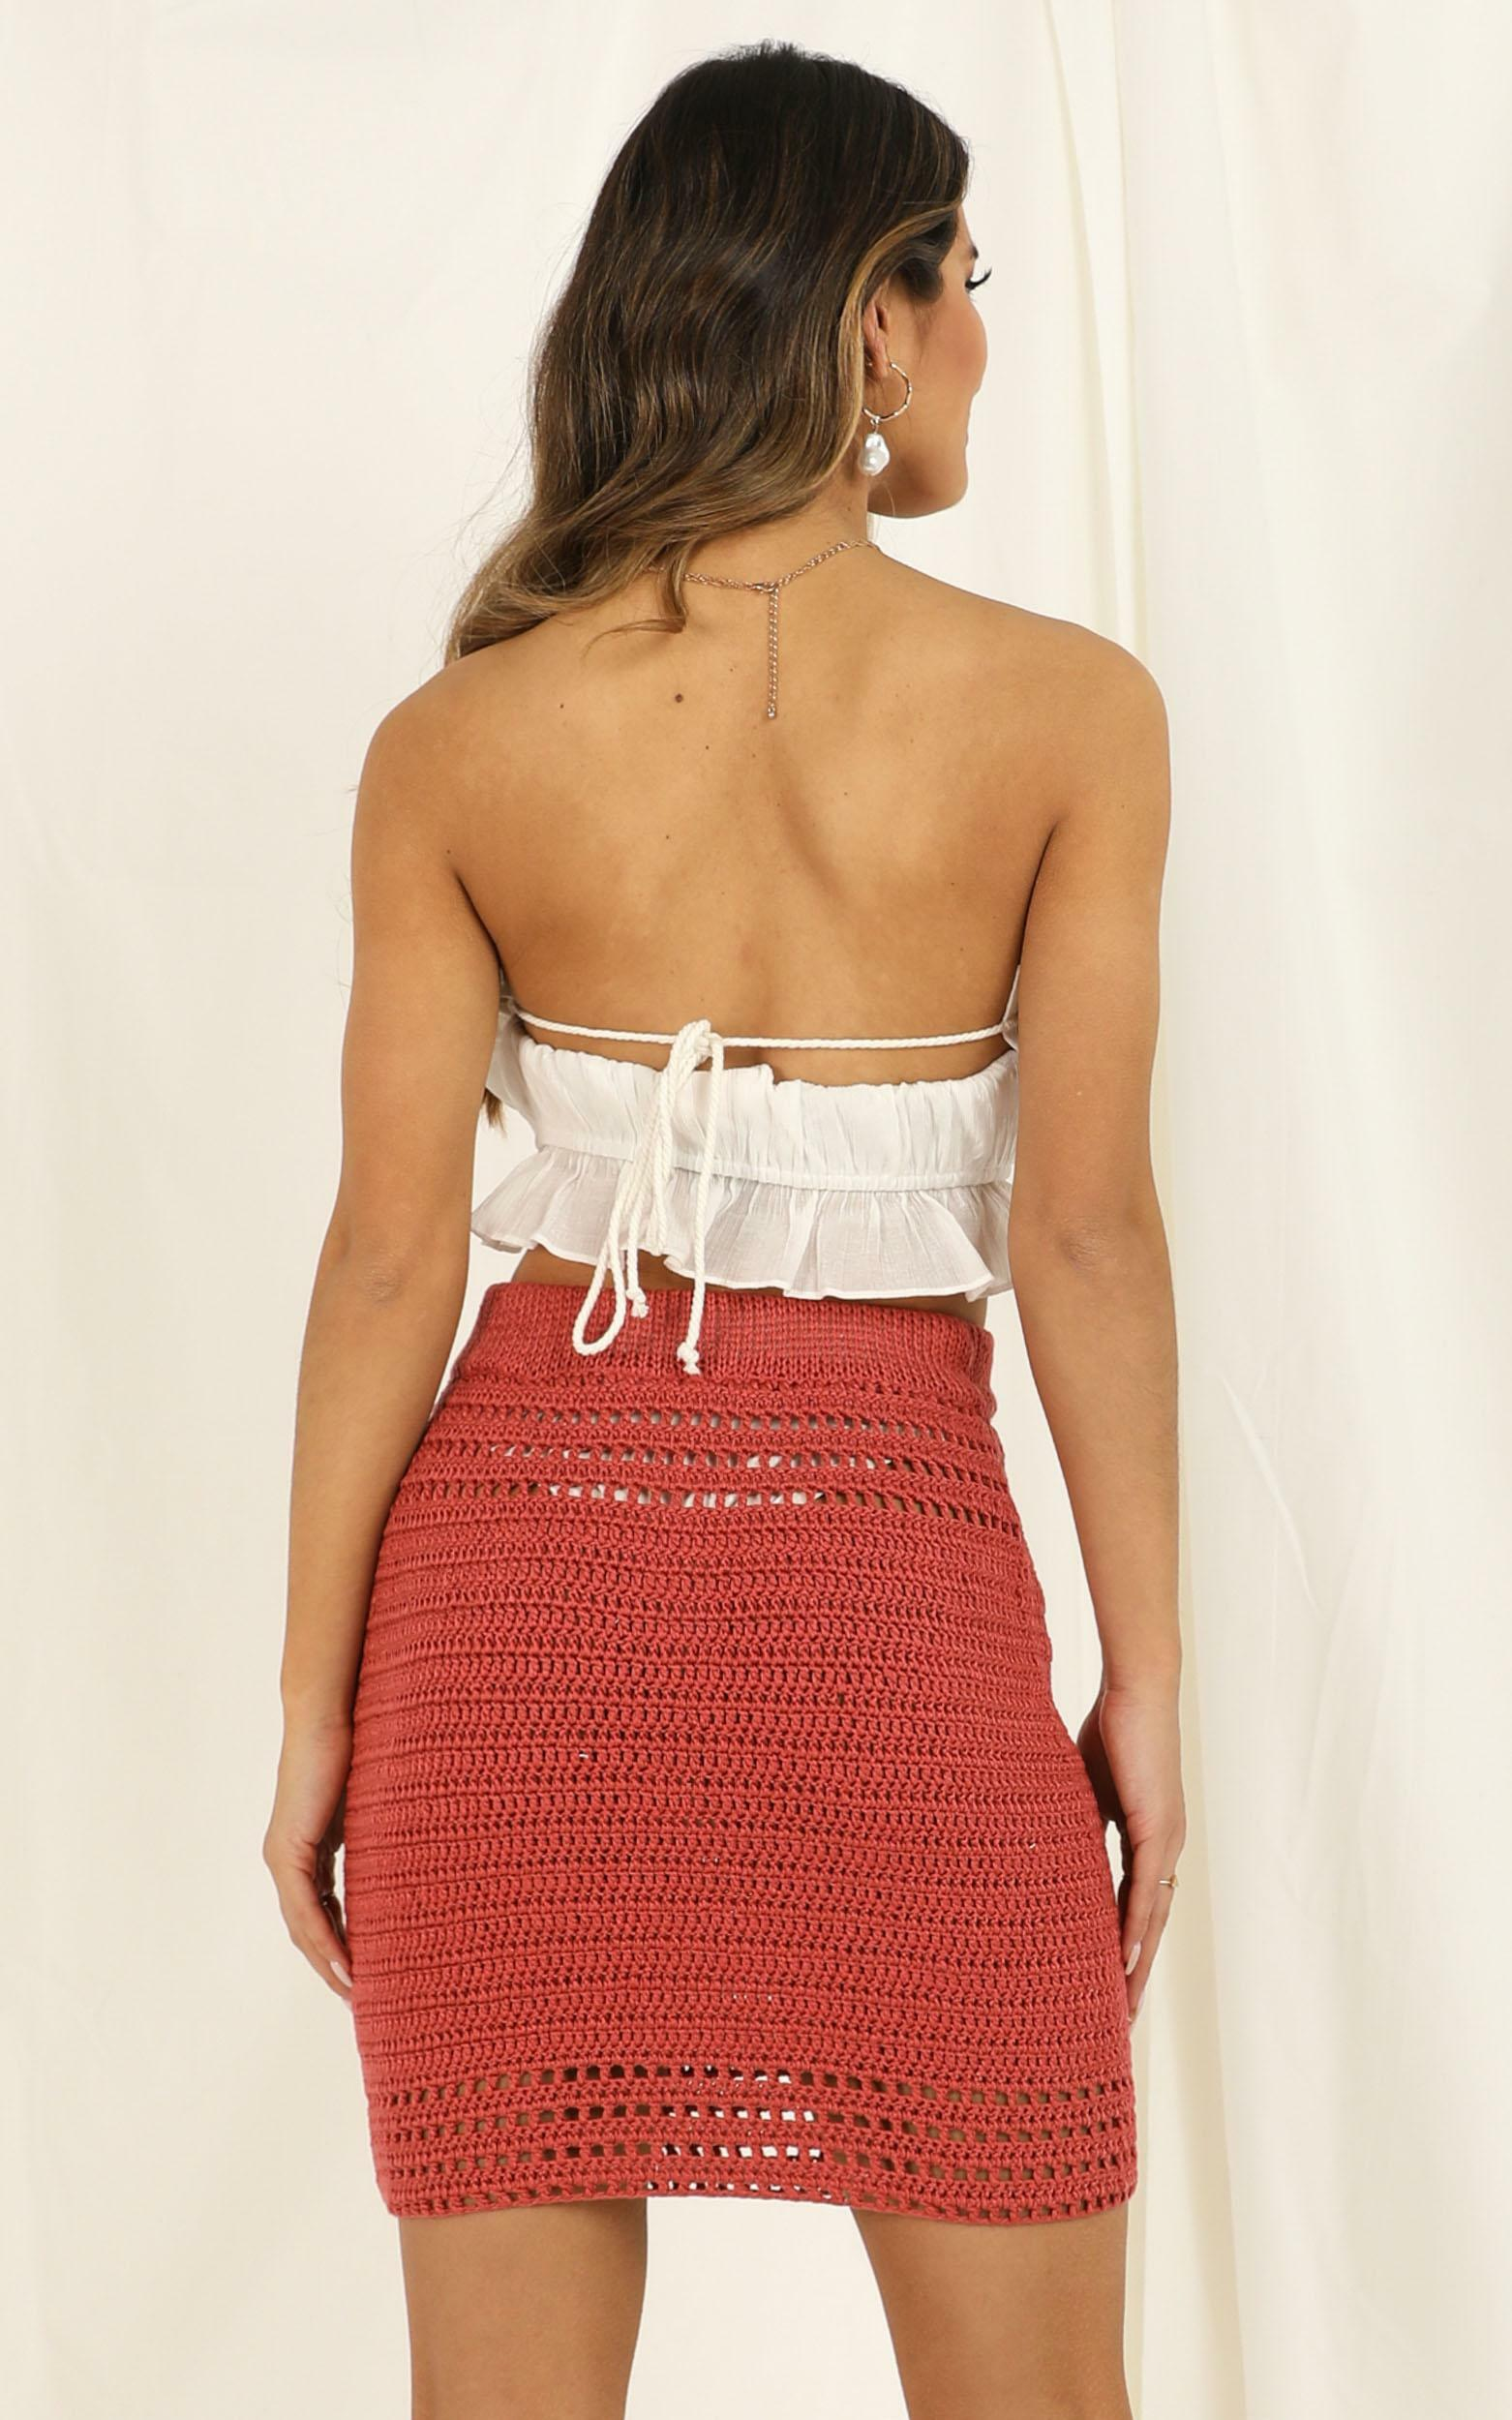 Whats Your Sign Skirt in dusty rose crochet - 6 (XS), Pink, hi-res image number null